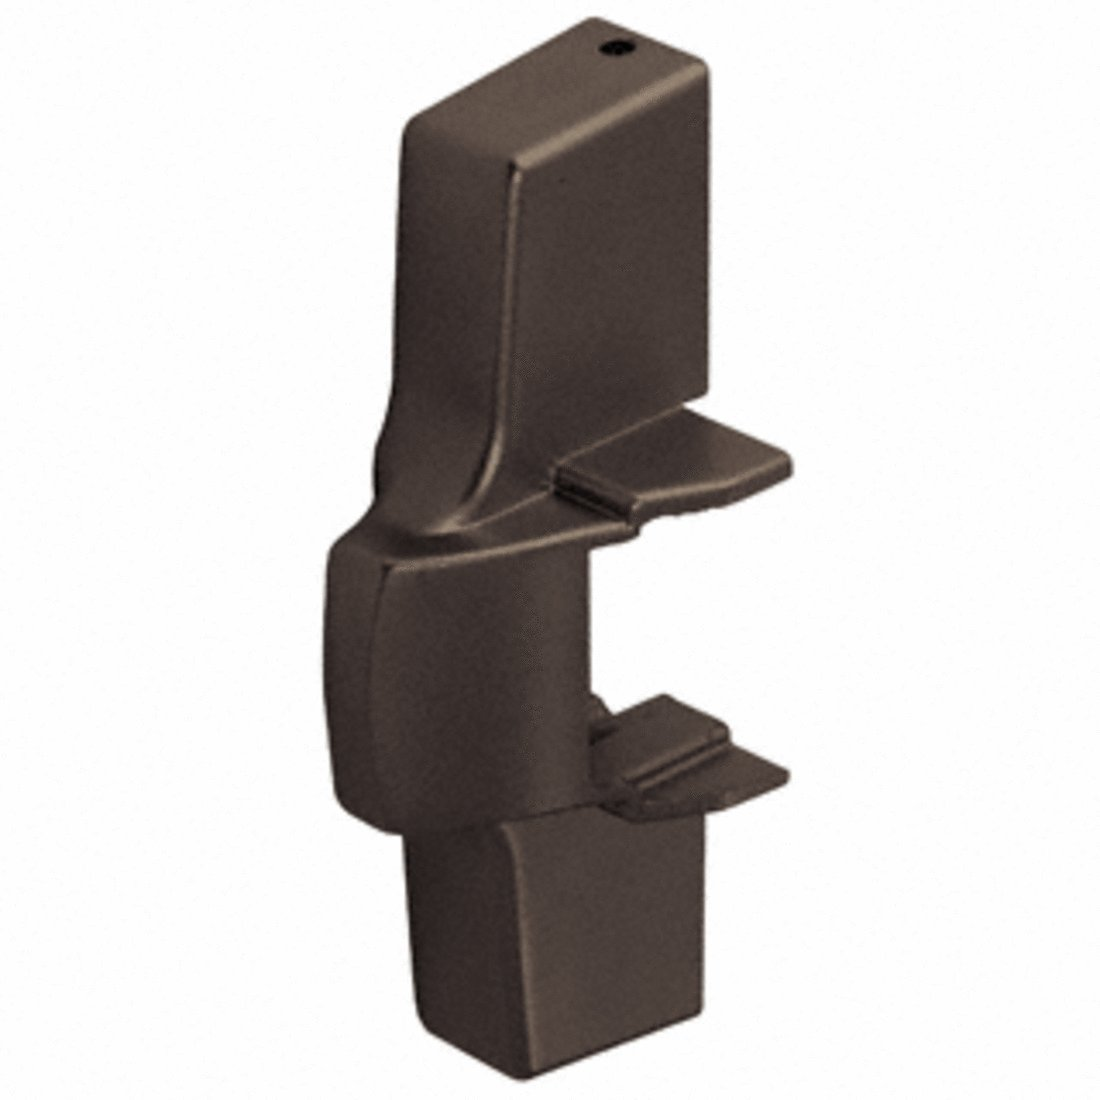 Dark Bronze Active Head Cover Package for Jackson 2095 Rim Panic Exit Device